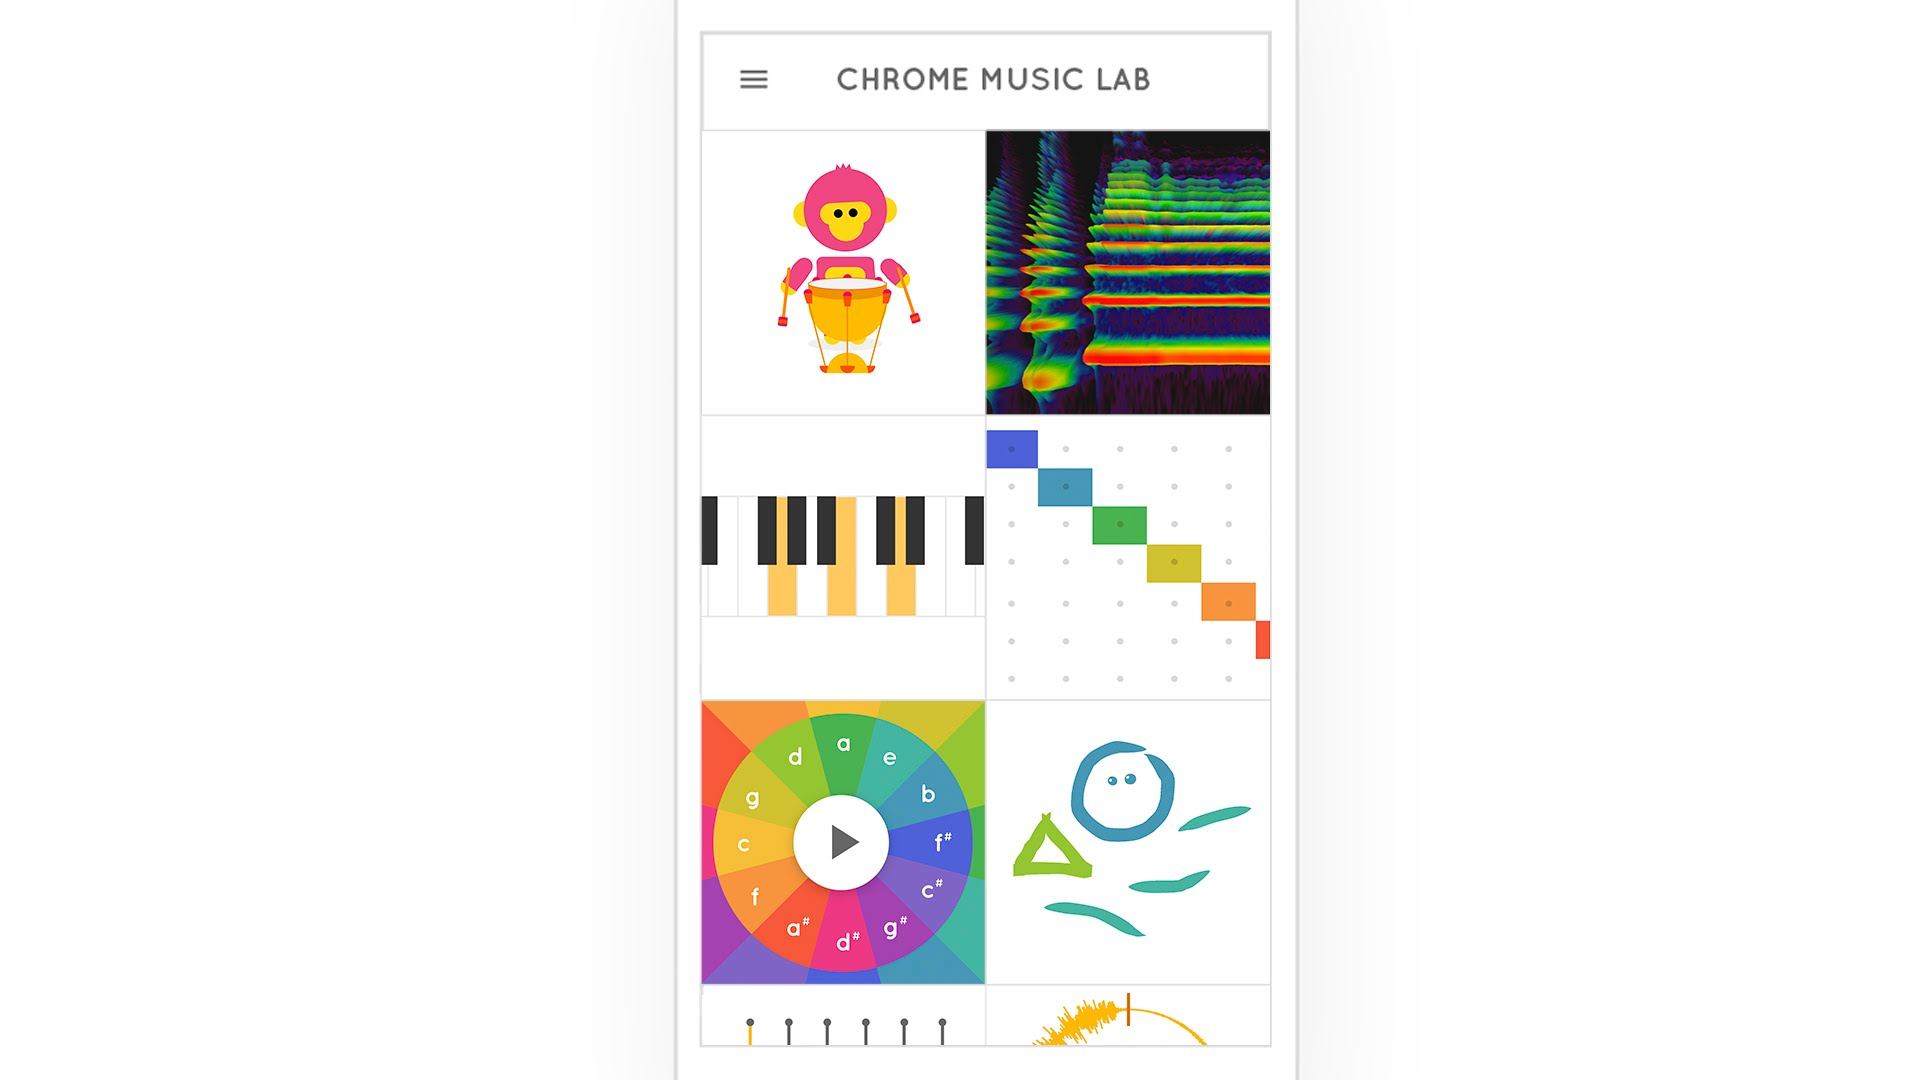 Introducing-Chrome-Music-Lab